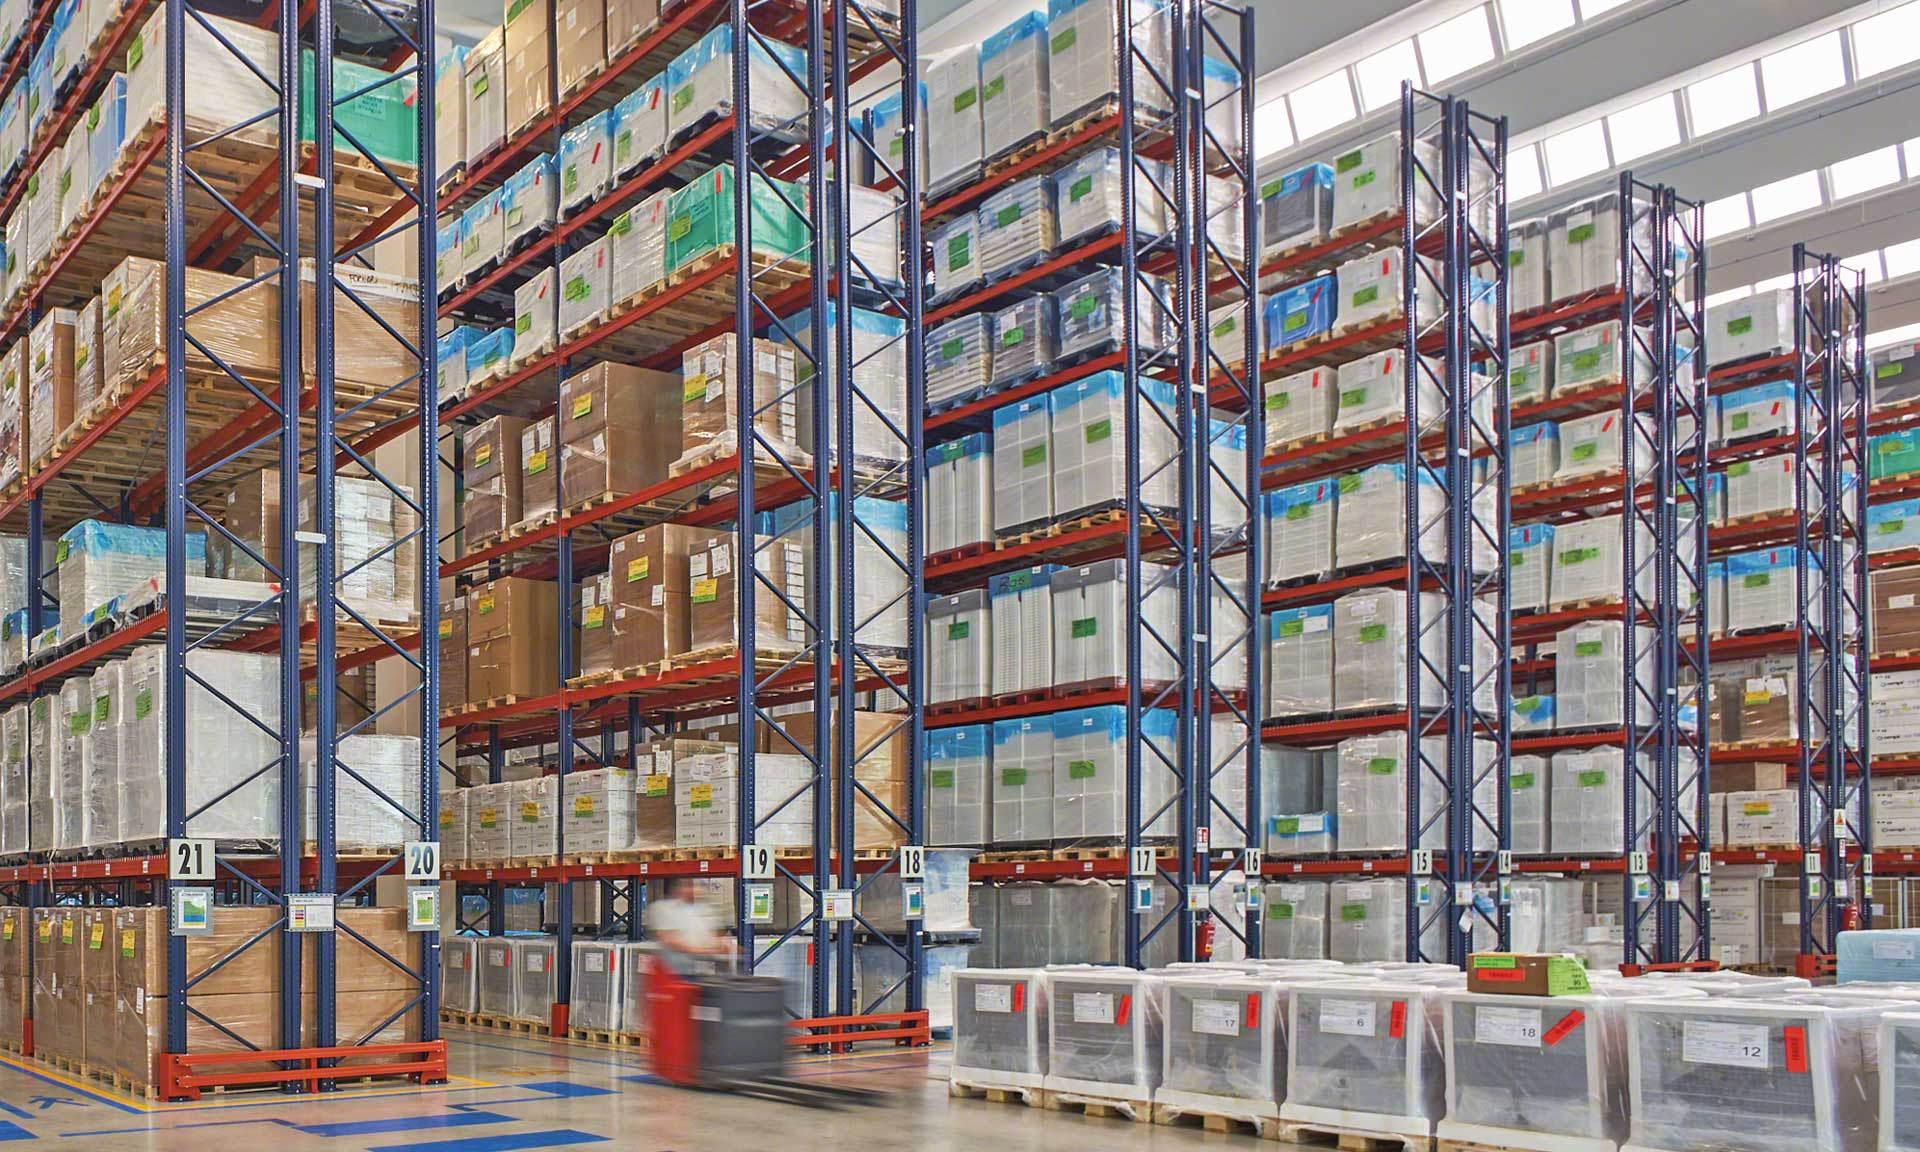 The Chiggiato Transporti facility with earthquake-proof pallet racking